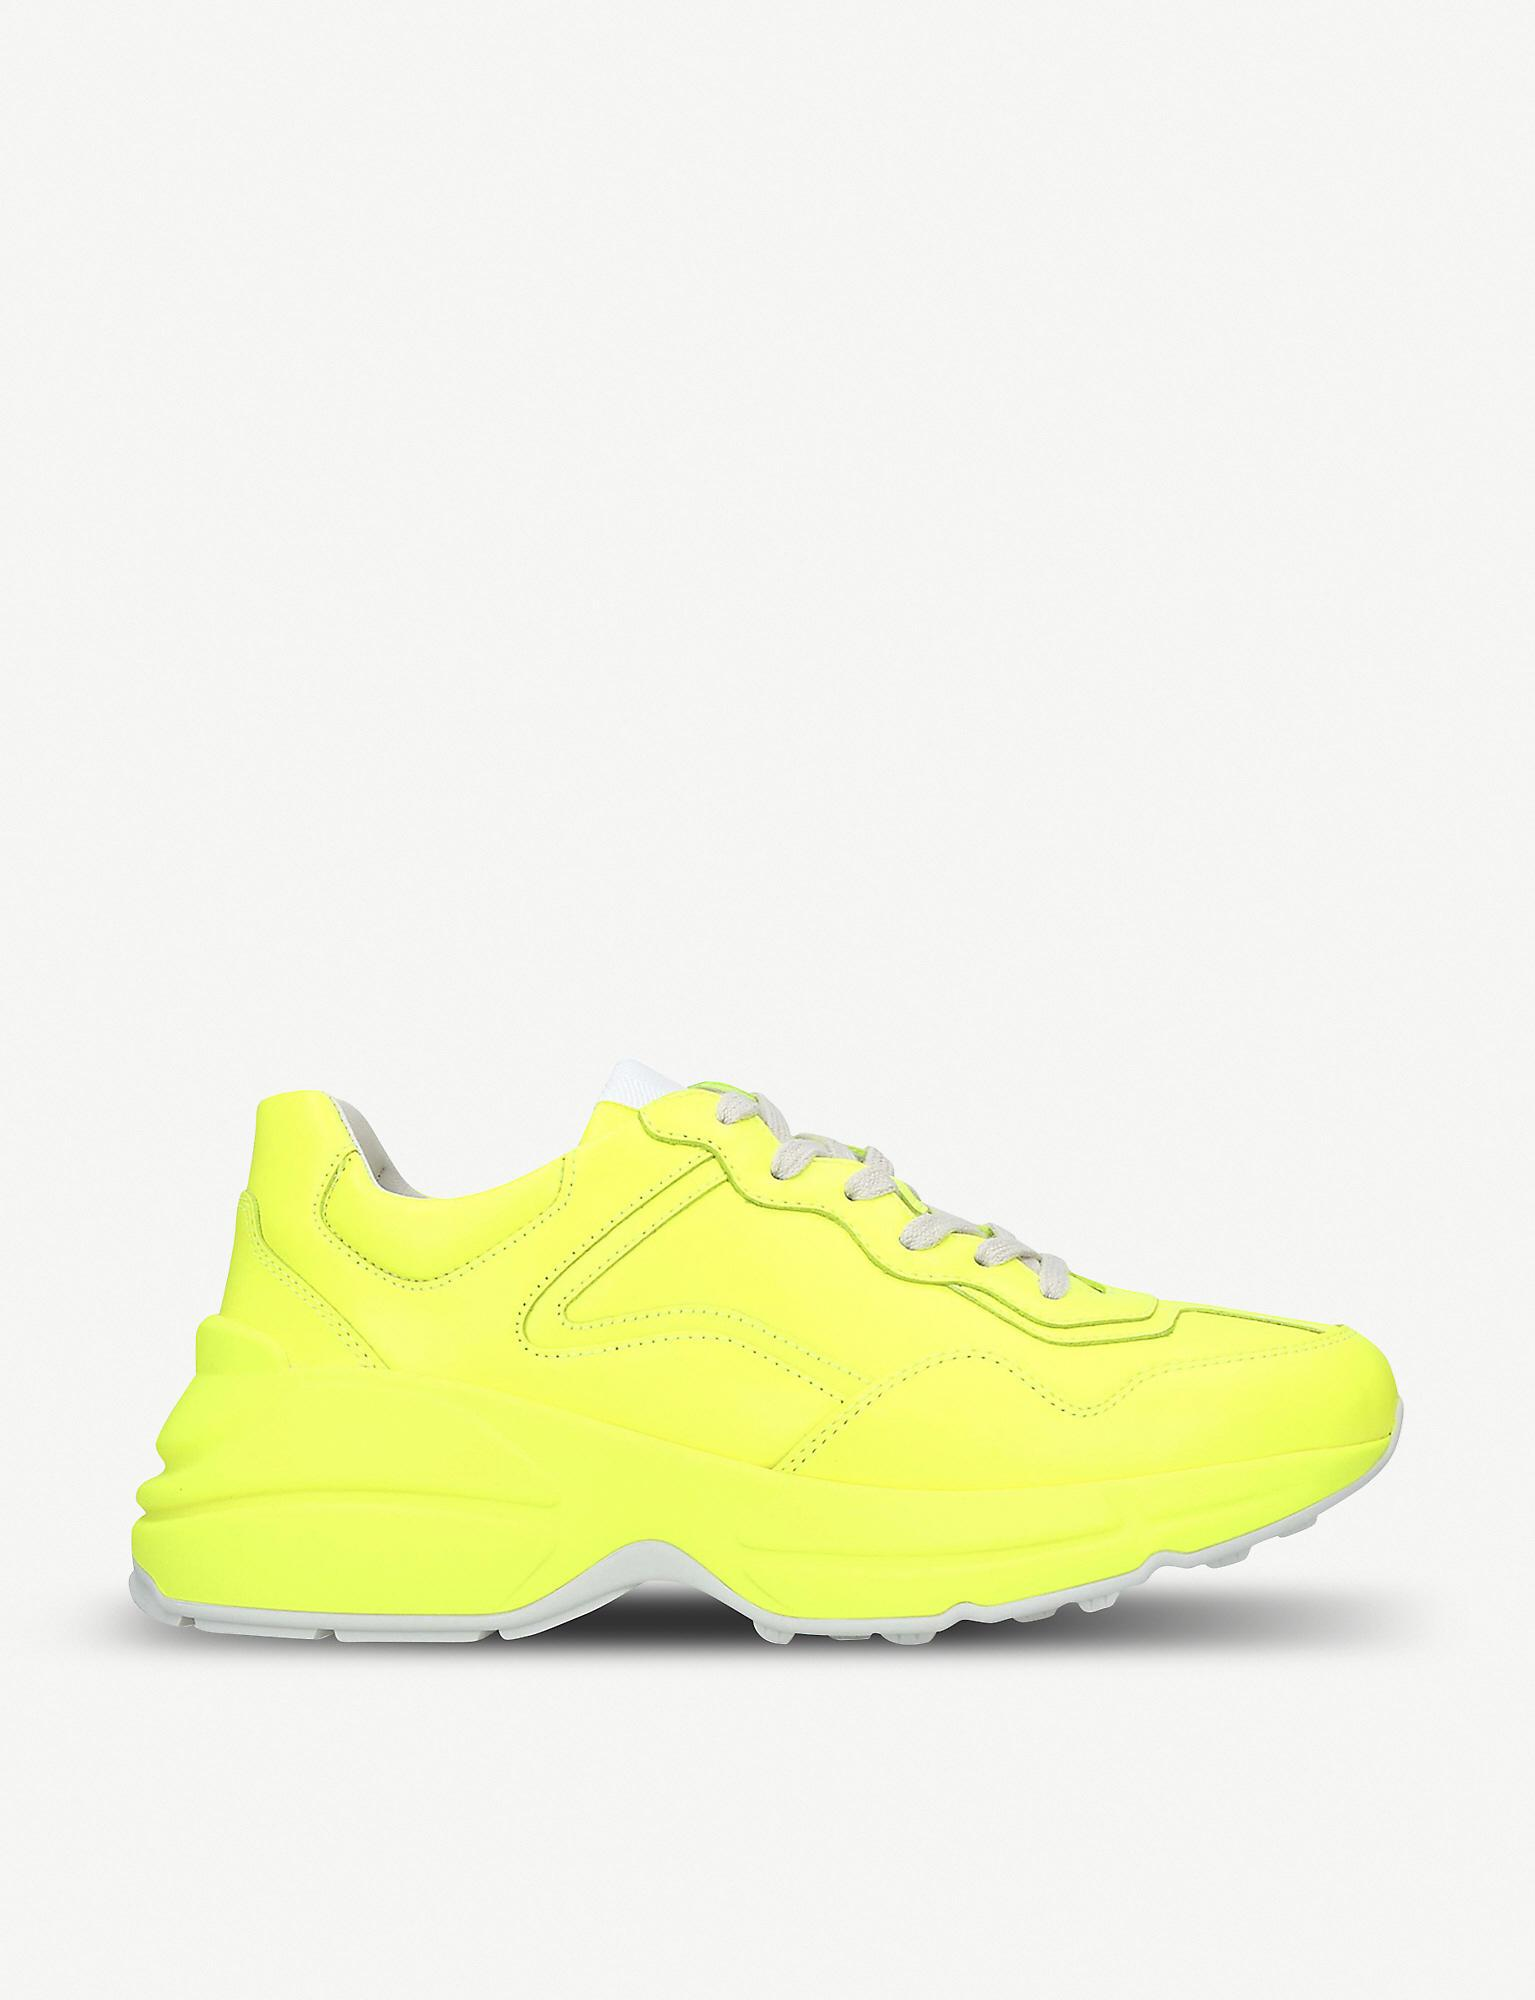 Gucci Rhyton Neon Leather Trainers in